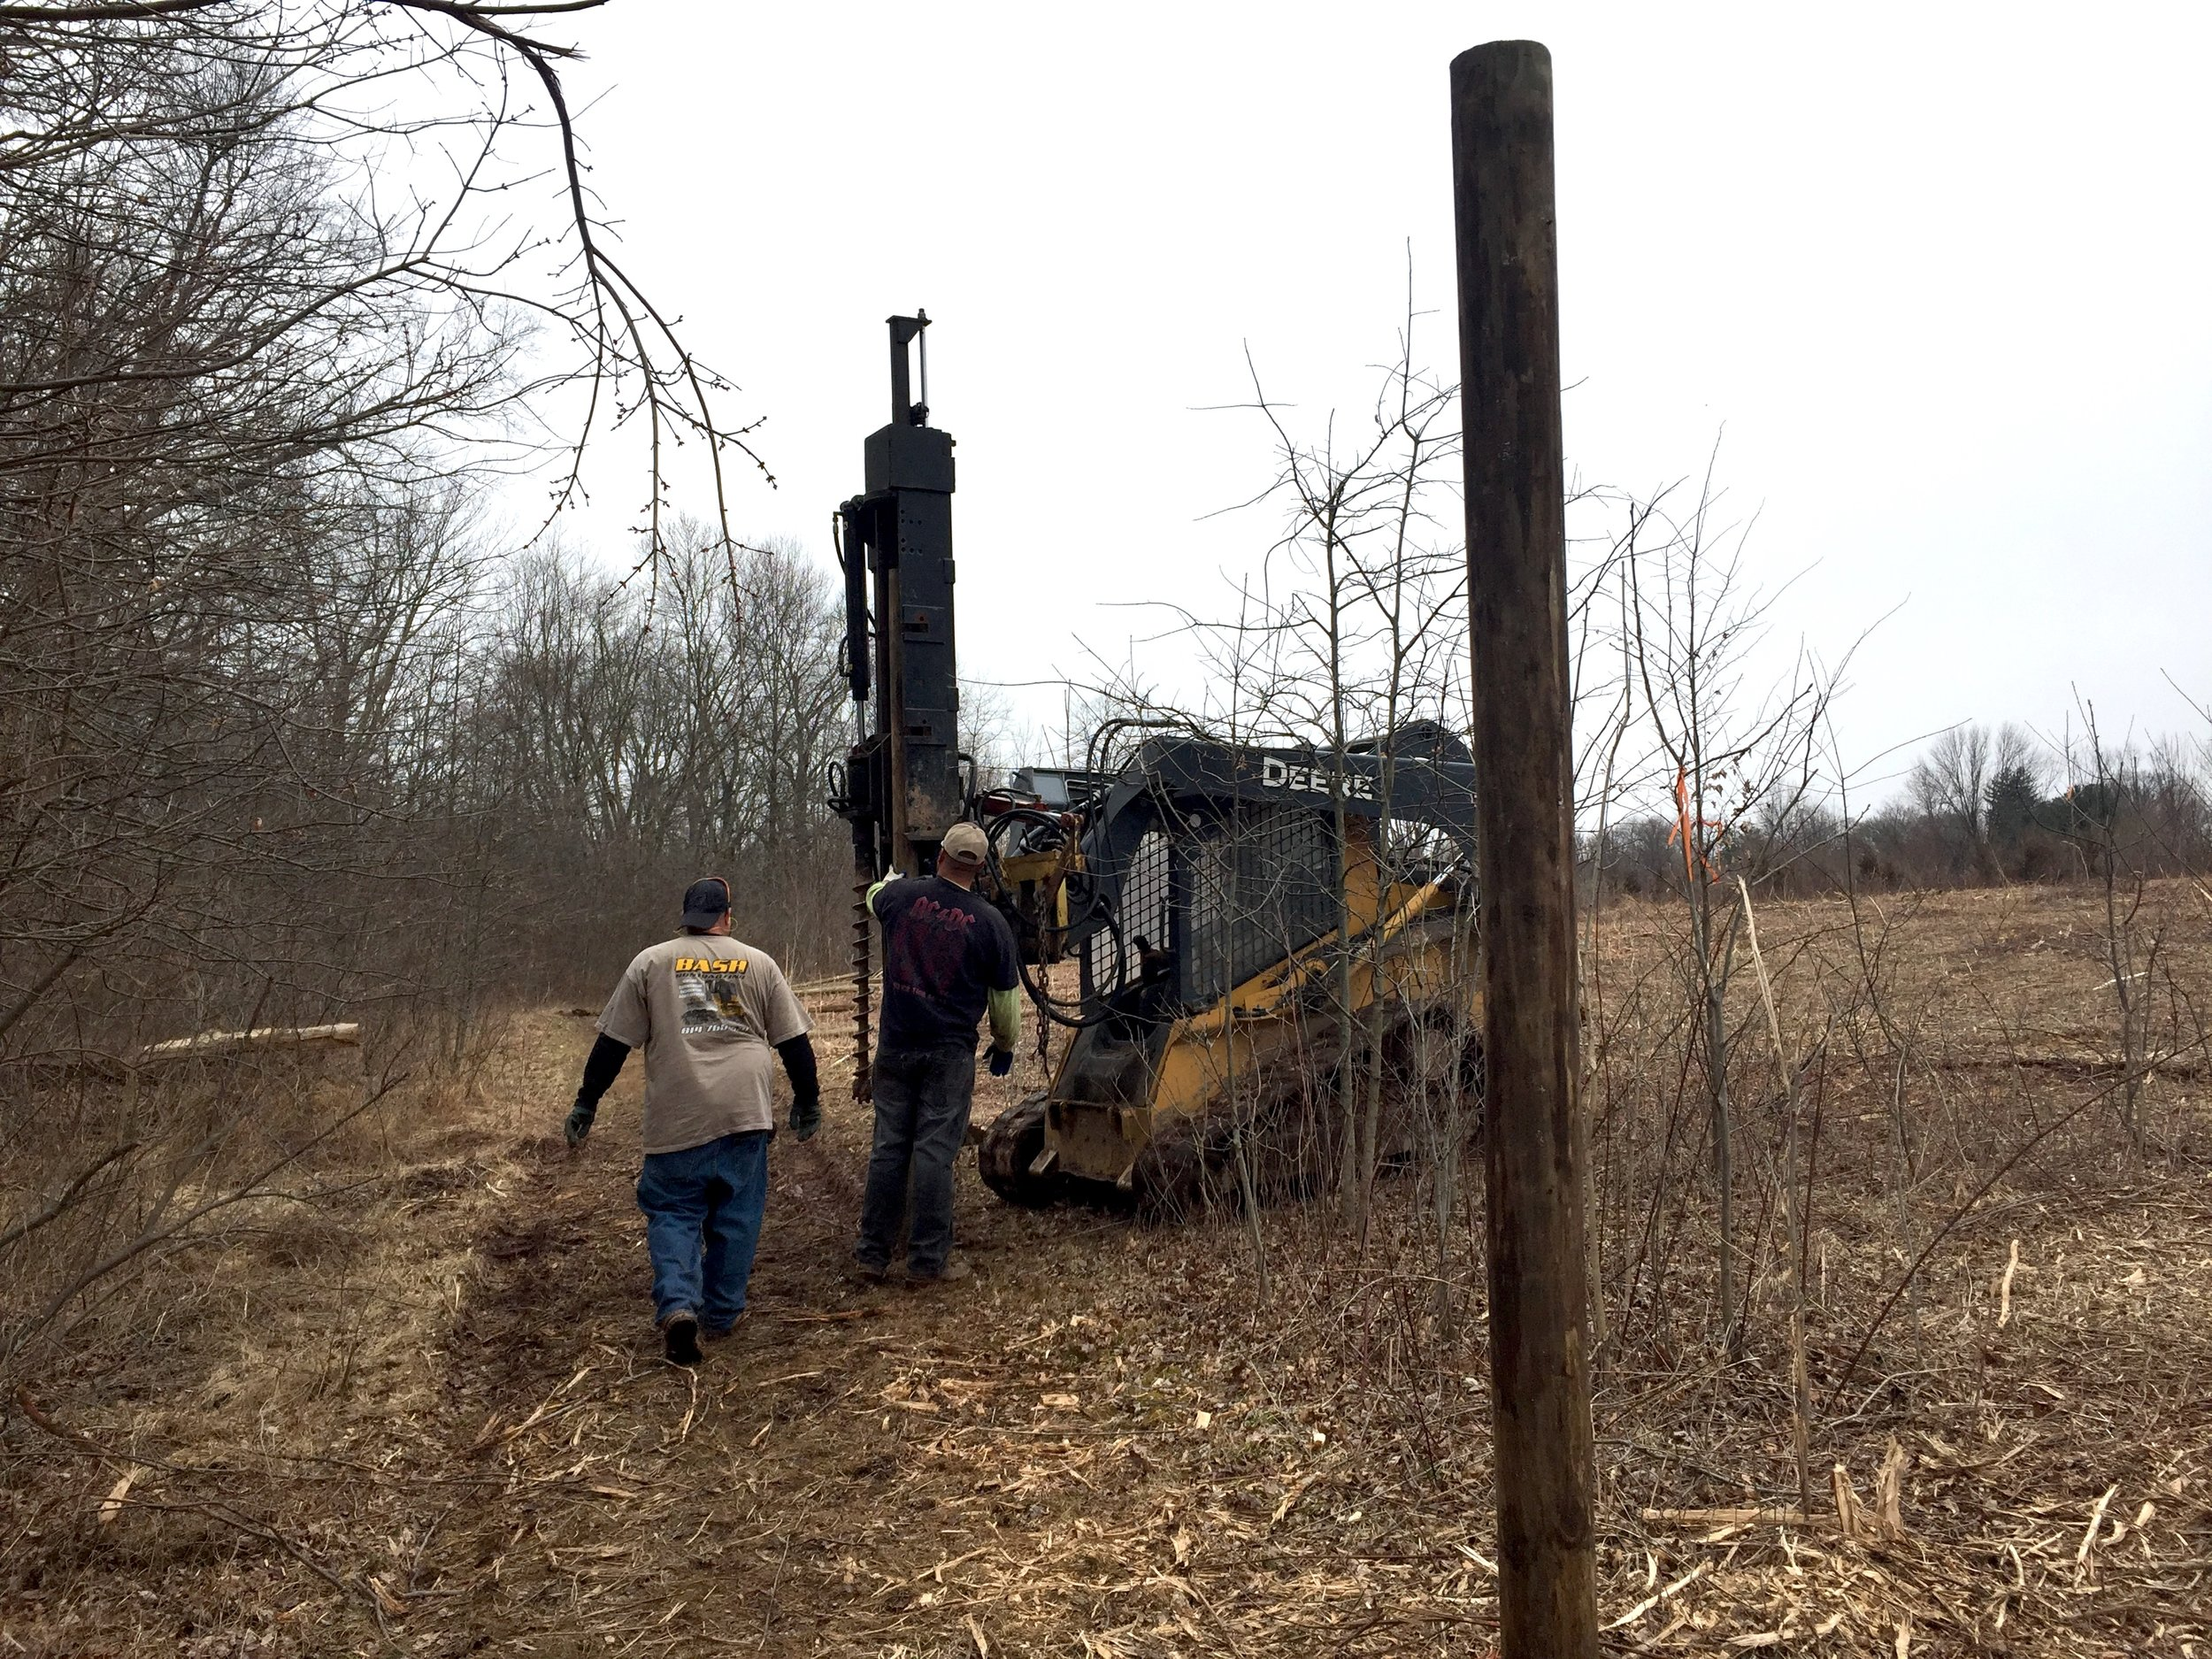 The Foraging Forest was mowed with a Timberax and contractors are starting the installation of a deer exclosure fence.